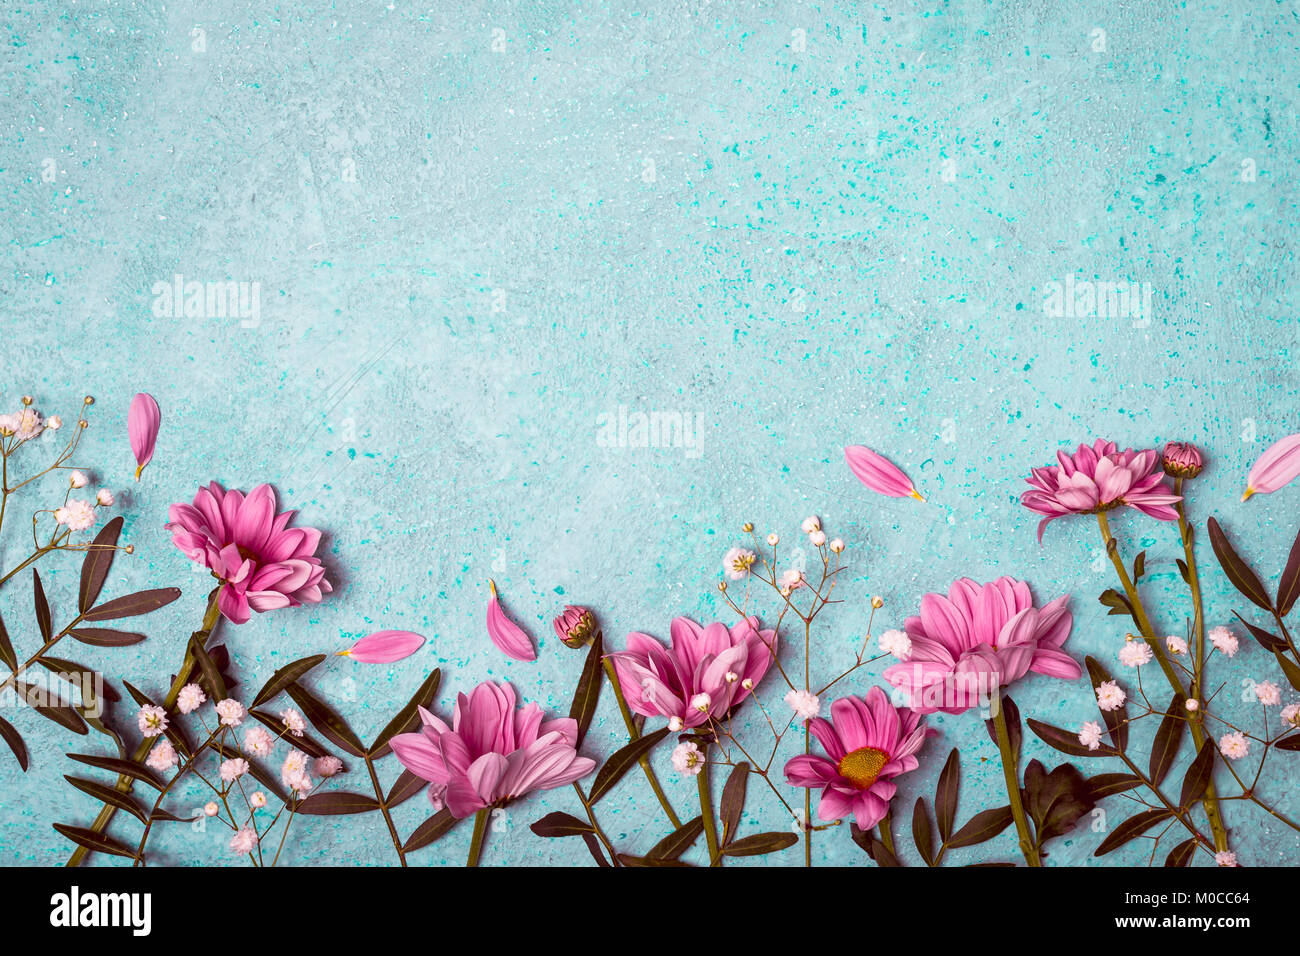 Spring summer creative nature background pink flowers border on spring summer creative nature background pink flowers border on vintage blue background mightylinksfo